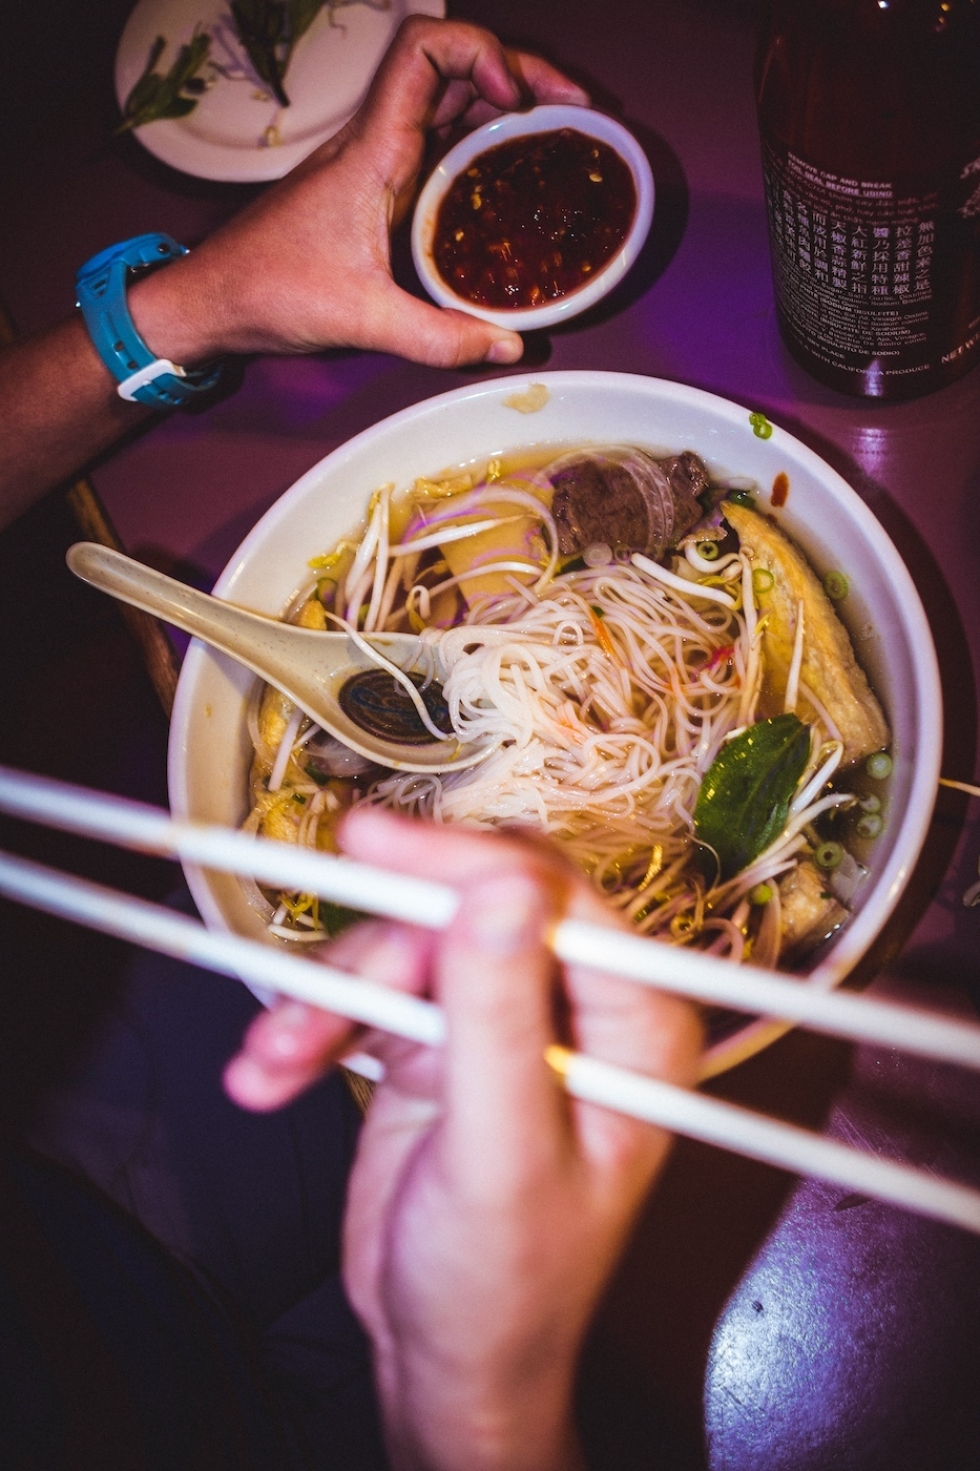 A satisfied customer dives into a large bowl of vegan Phô with noodles at All Chay.